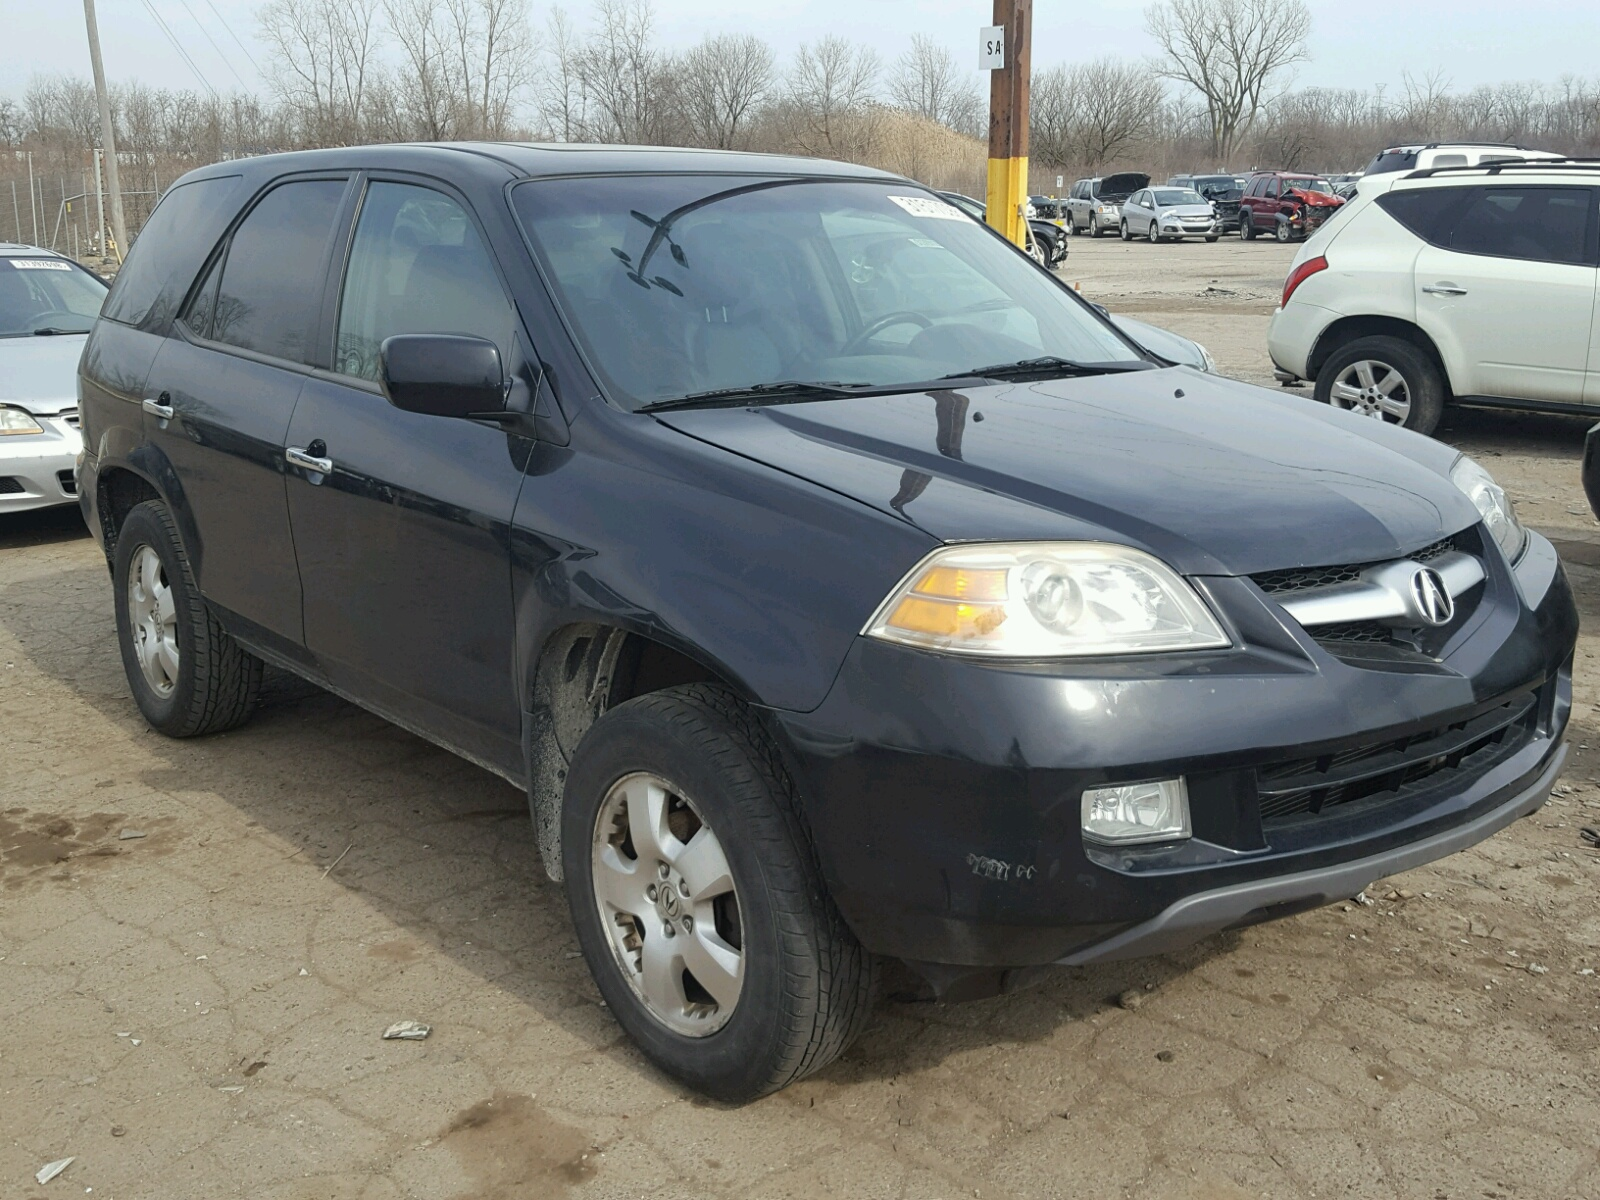 sales veh sale auto awd acura ma lawrence mdx suv in llc for frias